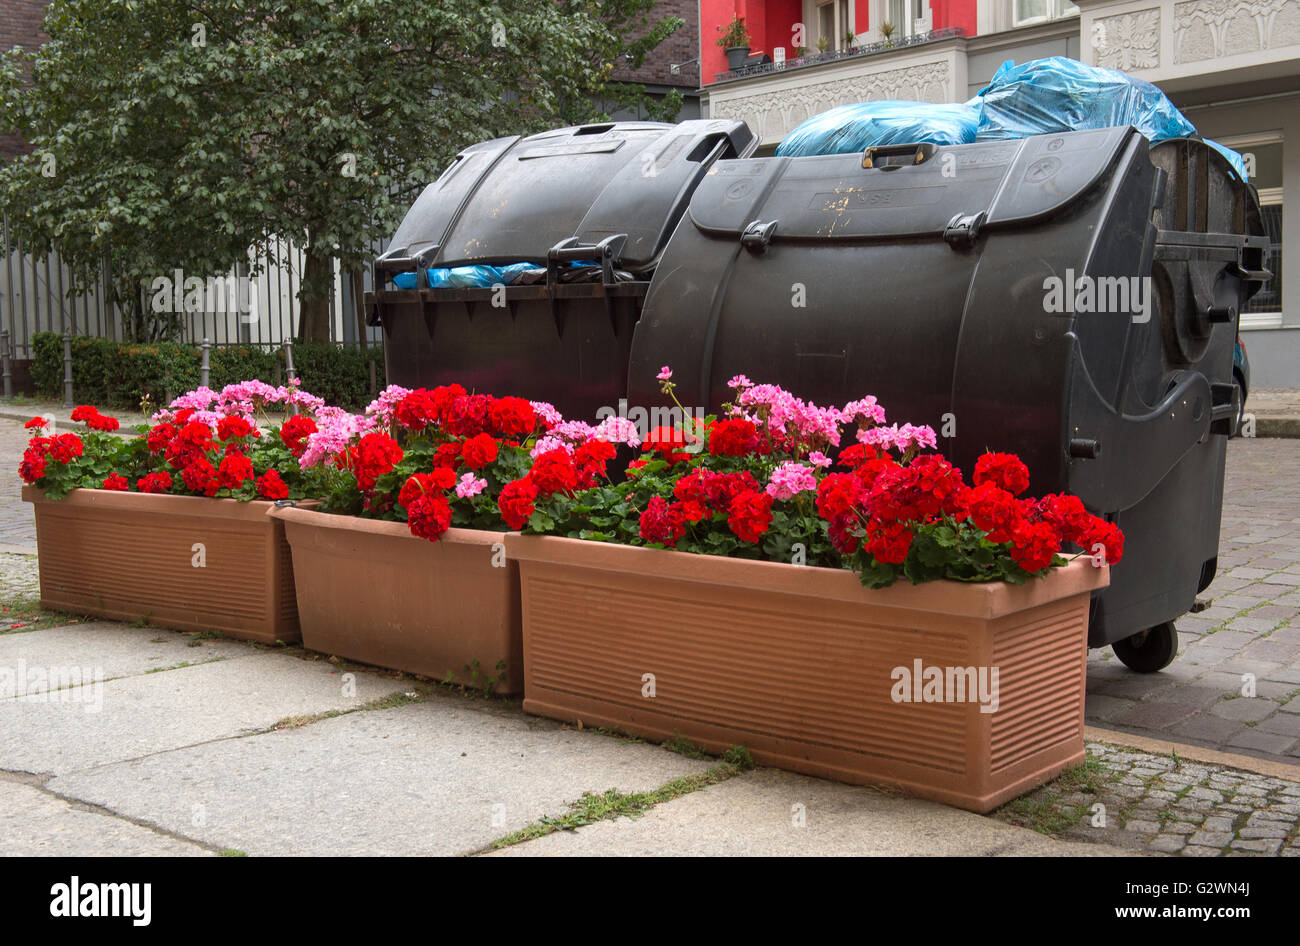 Berlin, Germany, Flower boxes are facing trash cans - Stock Image